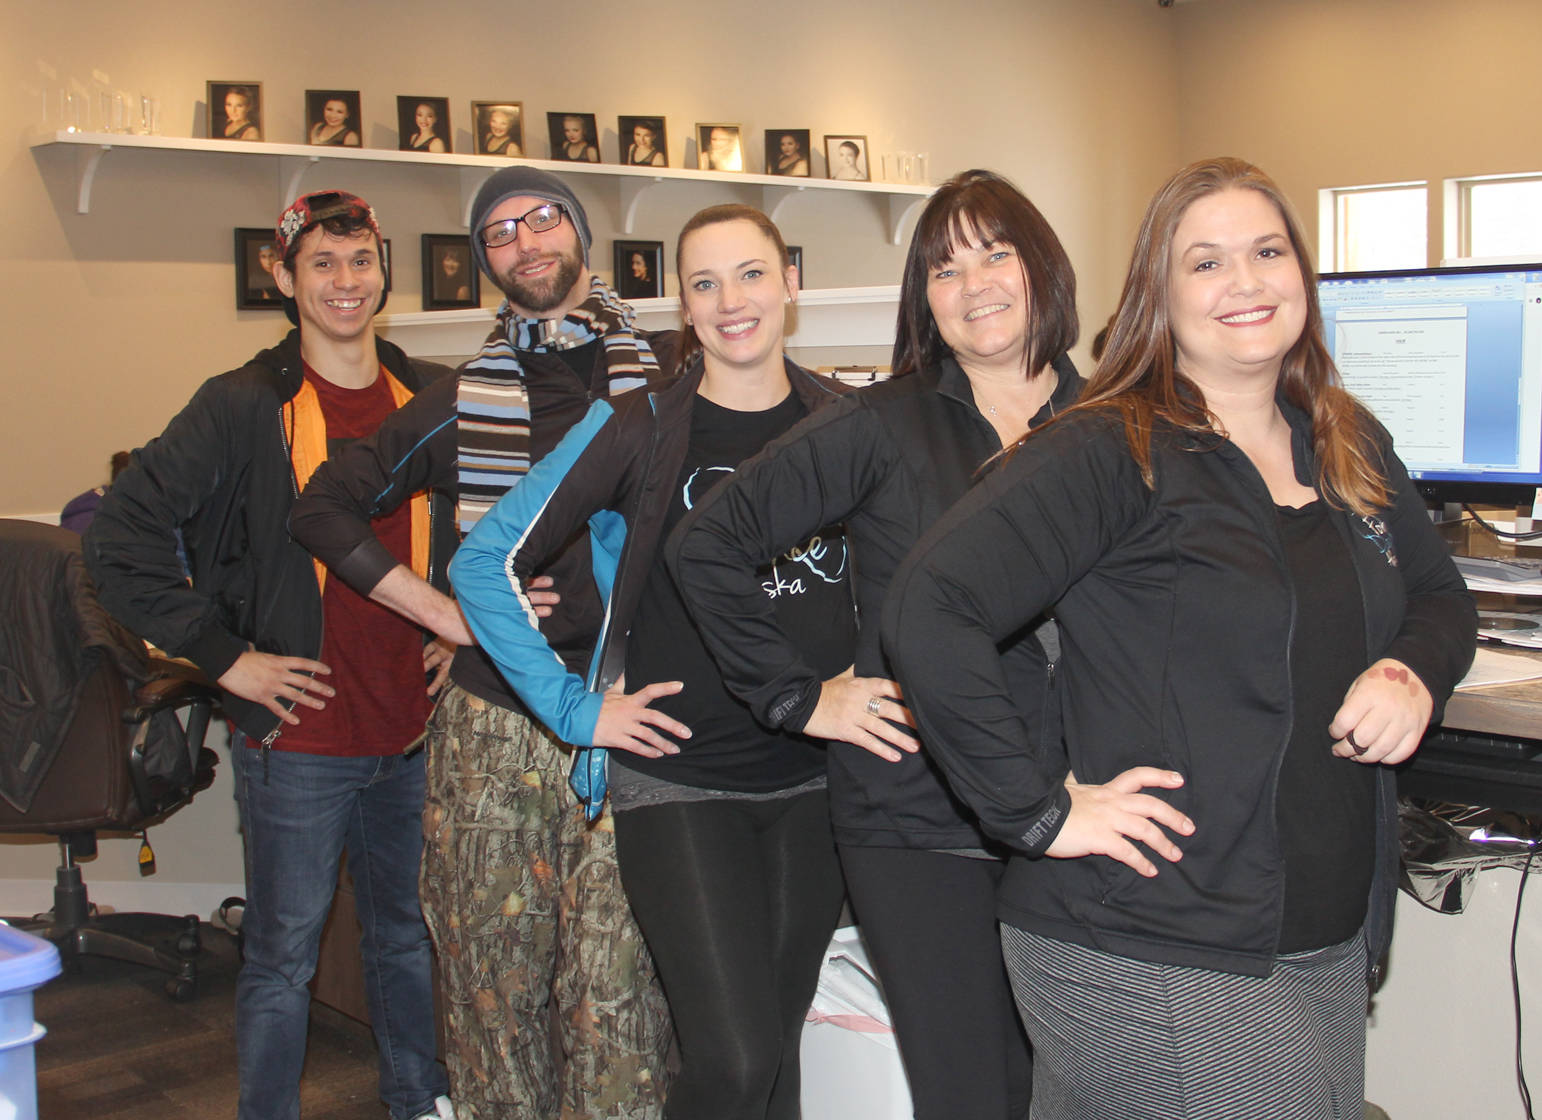 The staff at the new Forever Dance studio would love to show you the greatest dance facility in all Alaska.